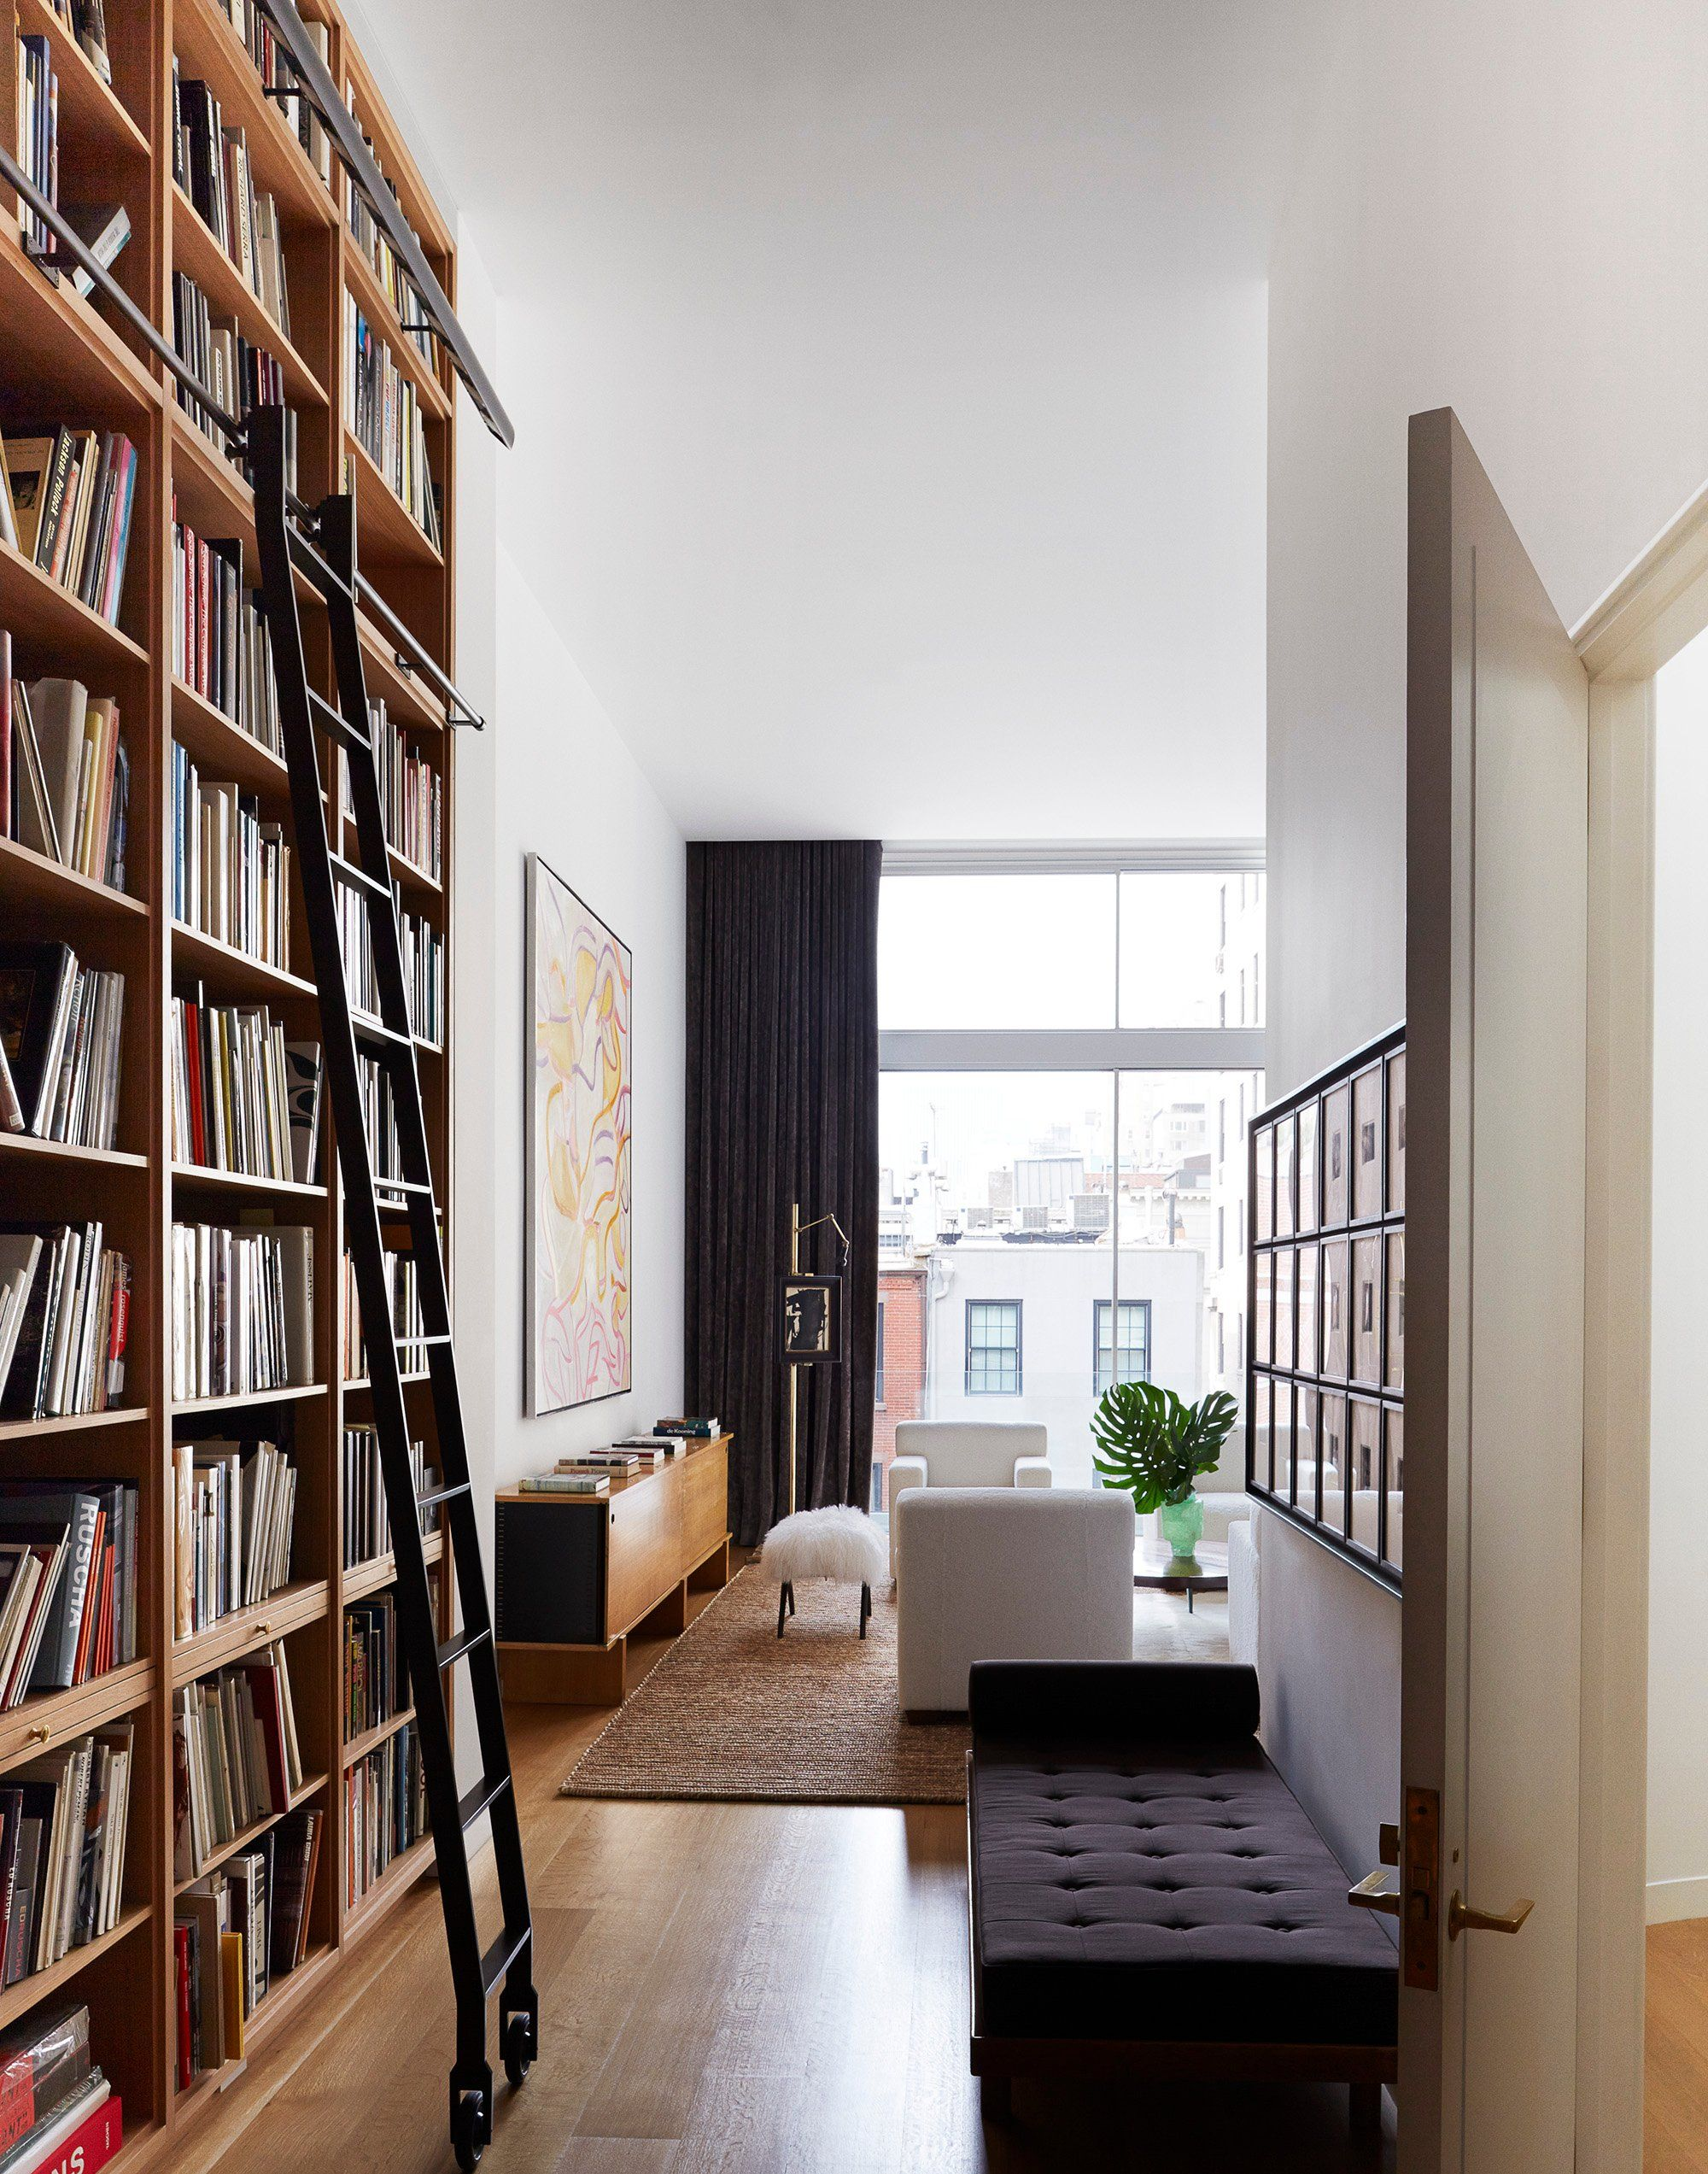 Contemporary Home Library Design: East 78th Street Modern Entry, D'Apostrophe Design, New